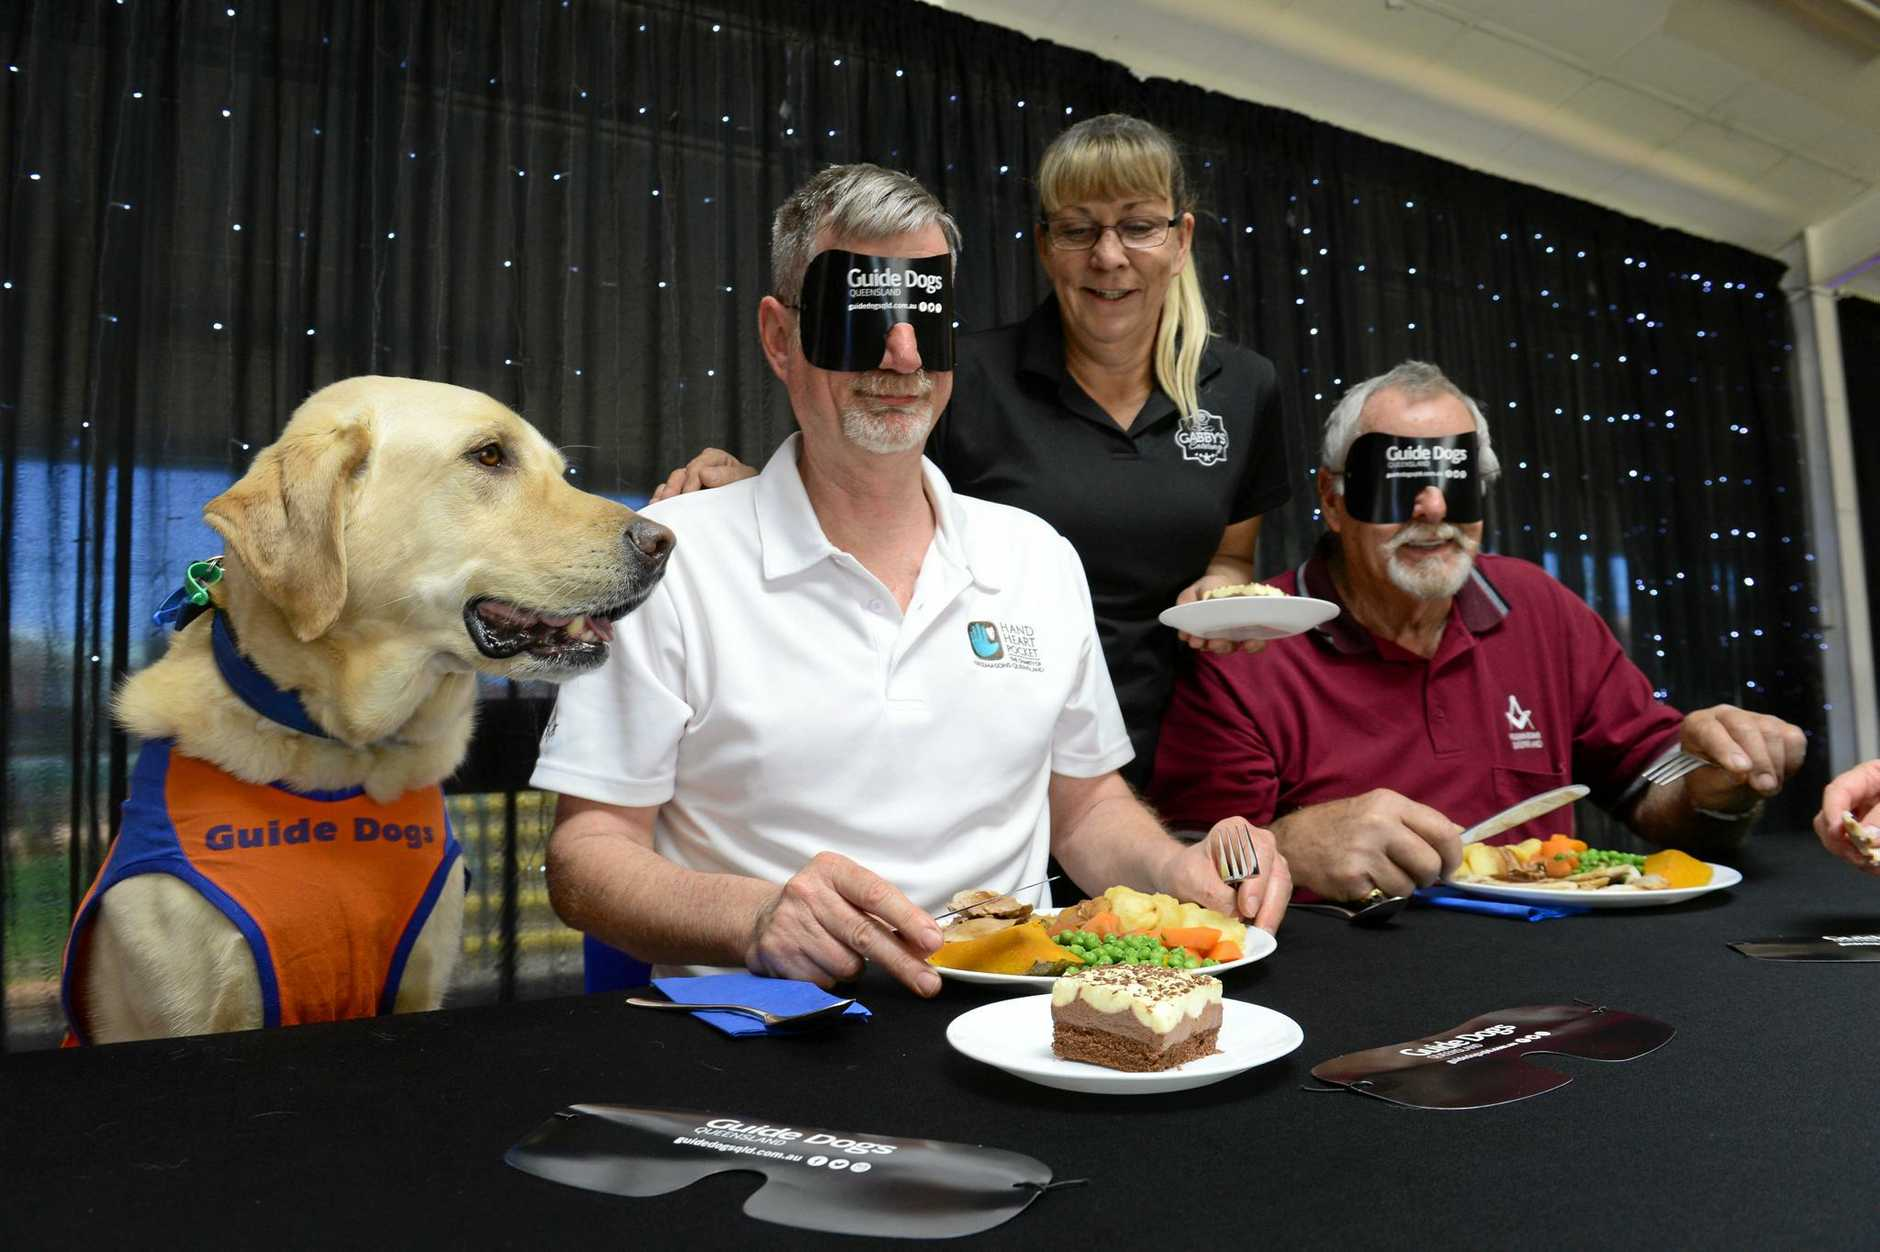 Support the United Tradesmen's Lodge as they raise funds for Guide Dogs Queensland by Dining in the Dark